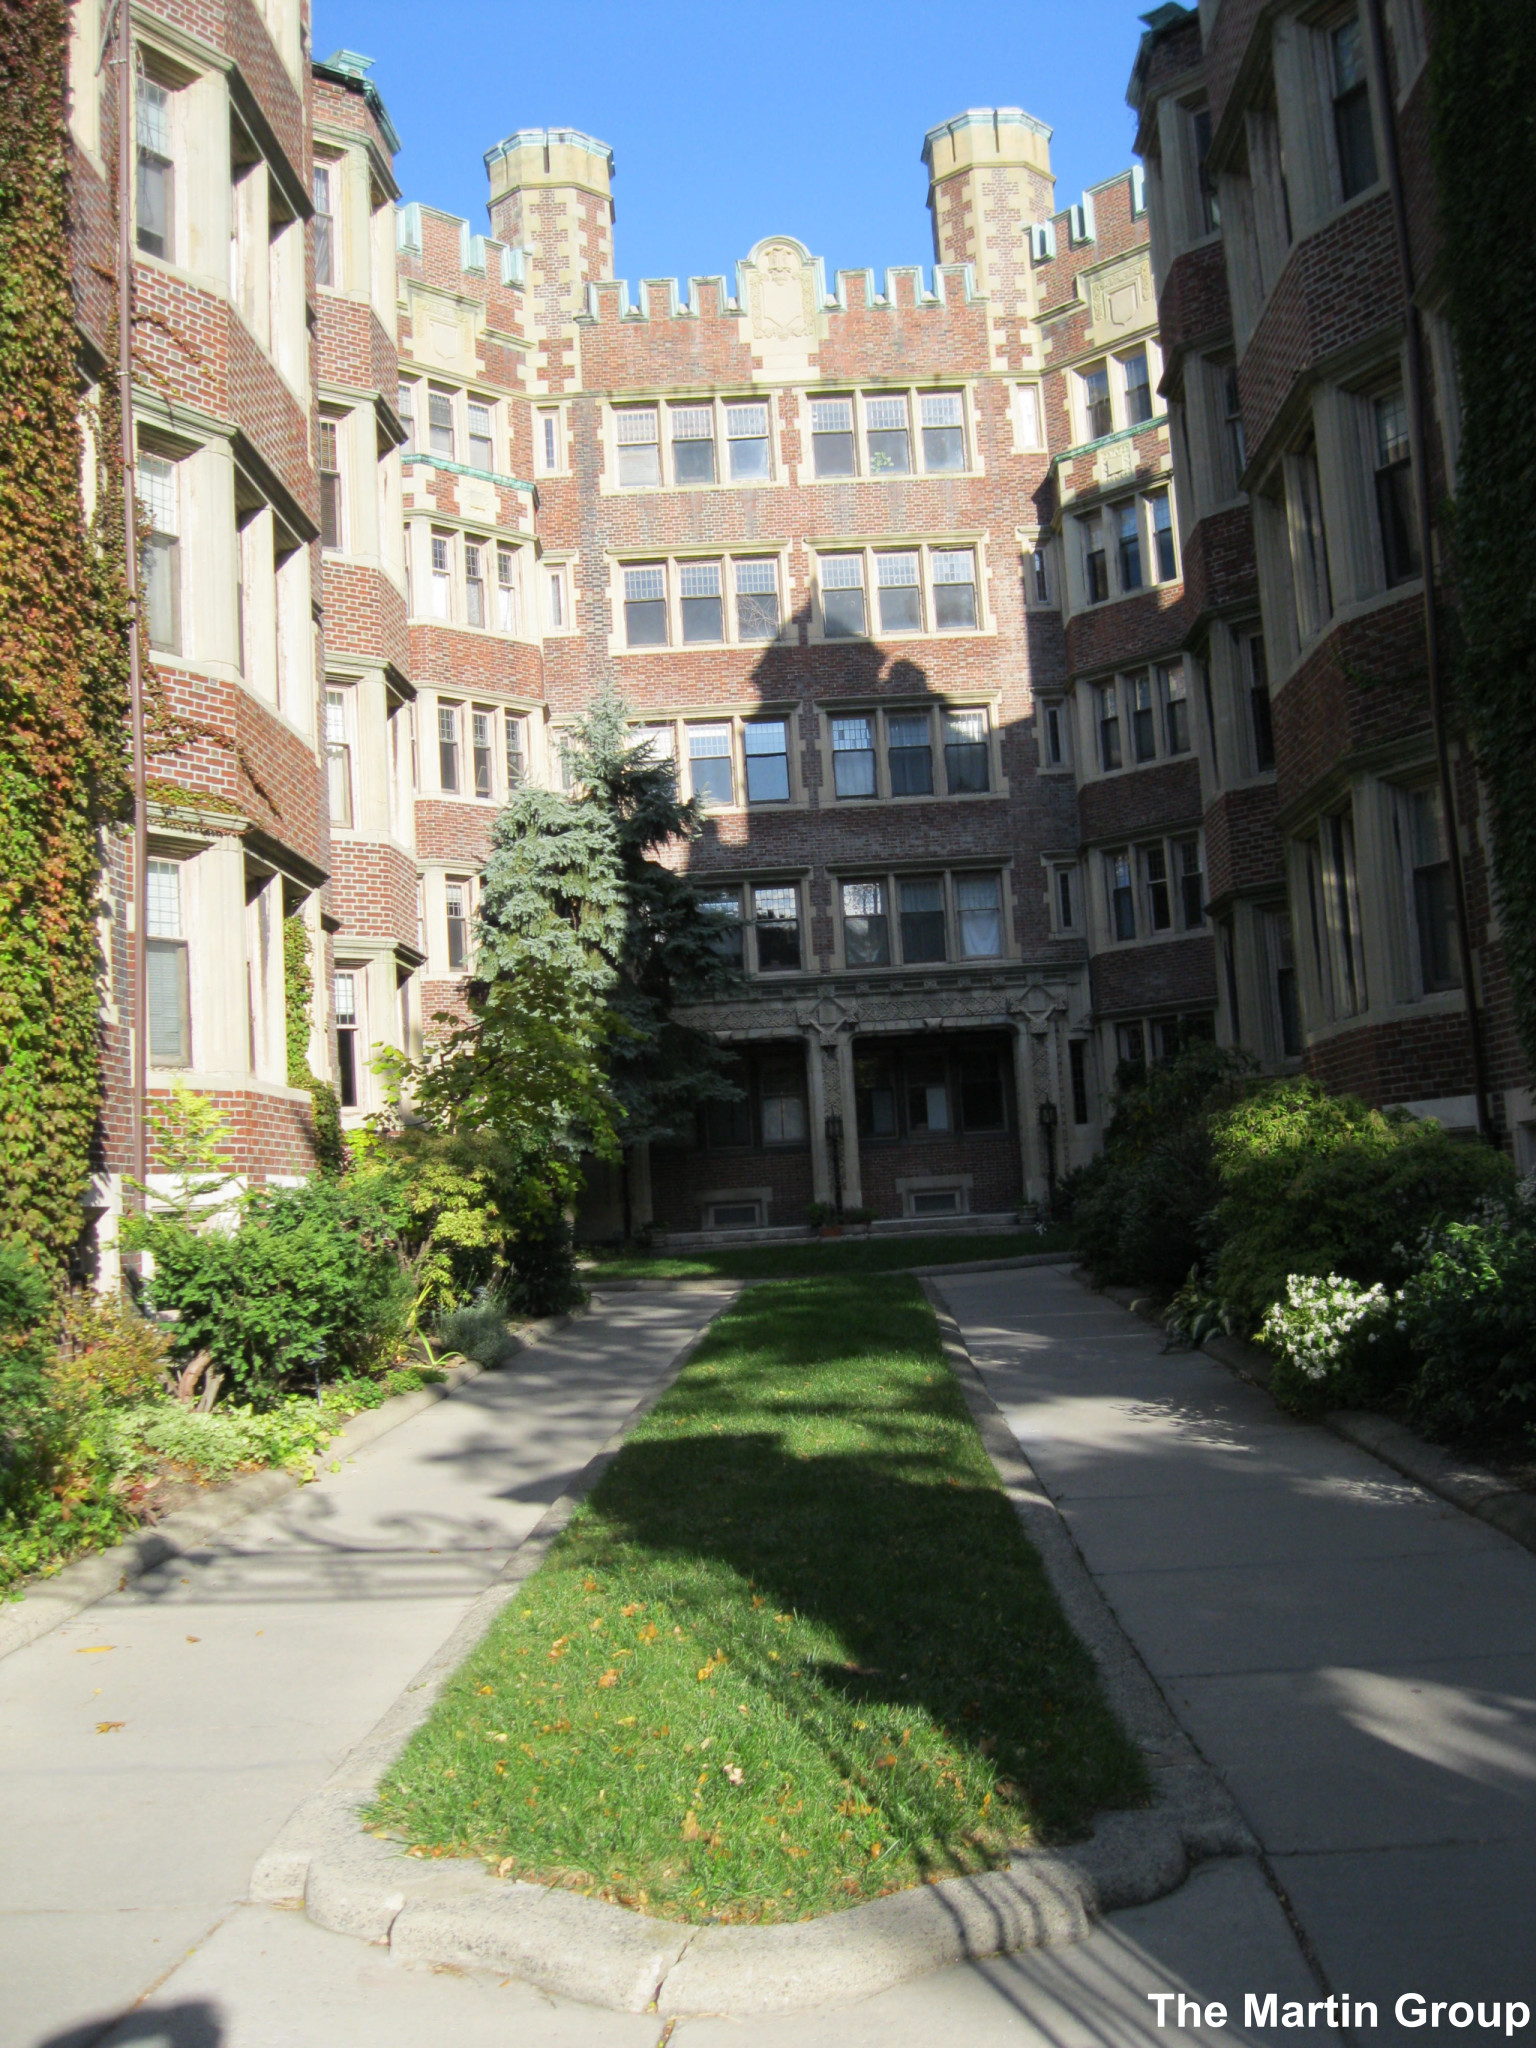 1 Bed, 1 Bath apartment in Cambridge for $1,800